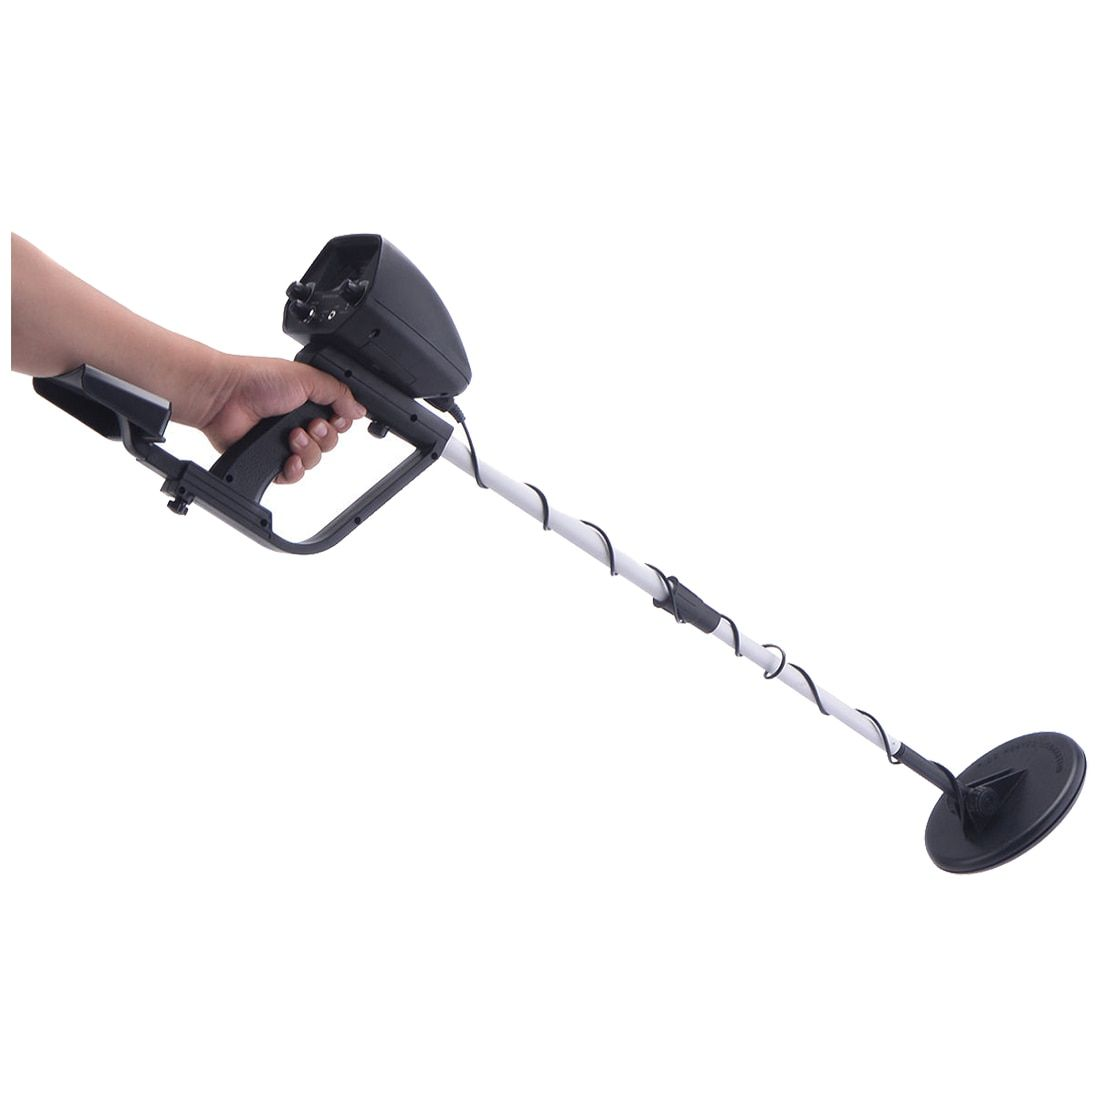 Waterproof Metal Detector Deep Sensitive Search Gold Digger Hunter 6.5 inch MD-4030 Handheld Metal Detector Scanning Gold Hunter